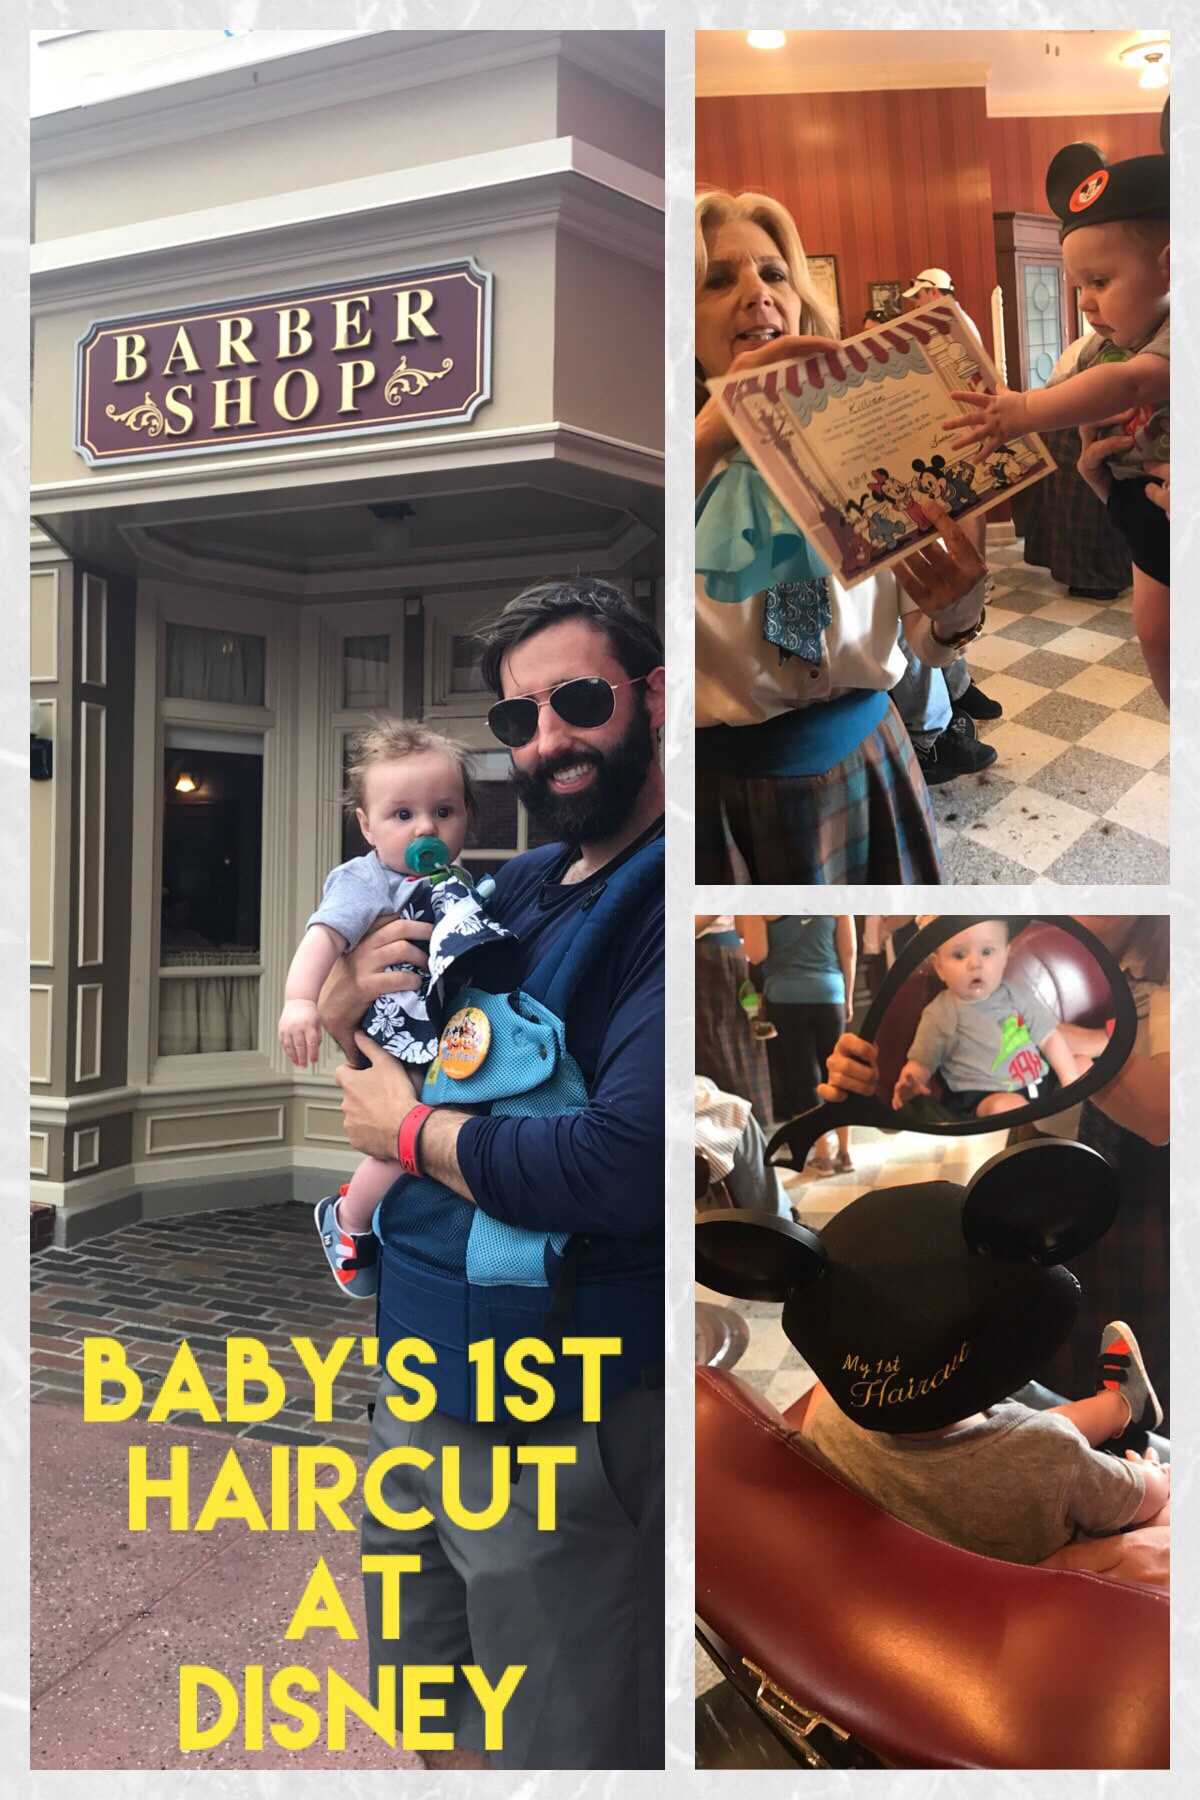 Getting A First Haircut at Disney World